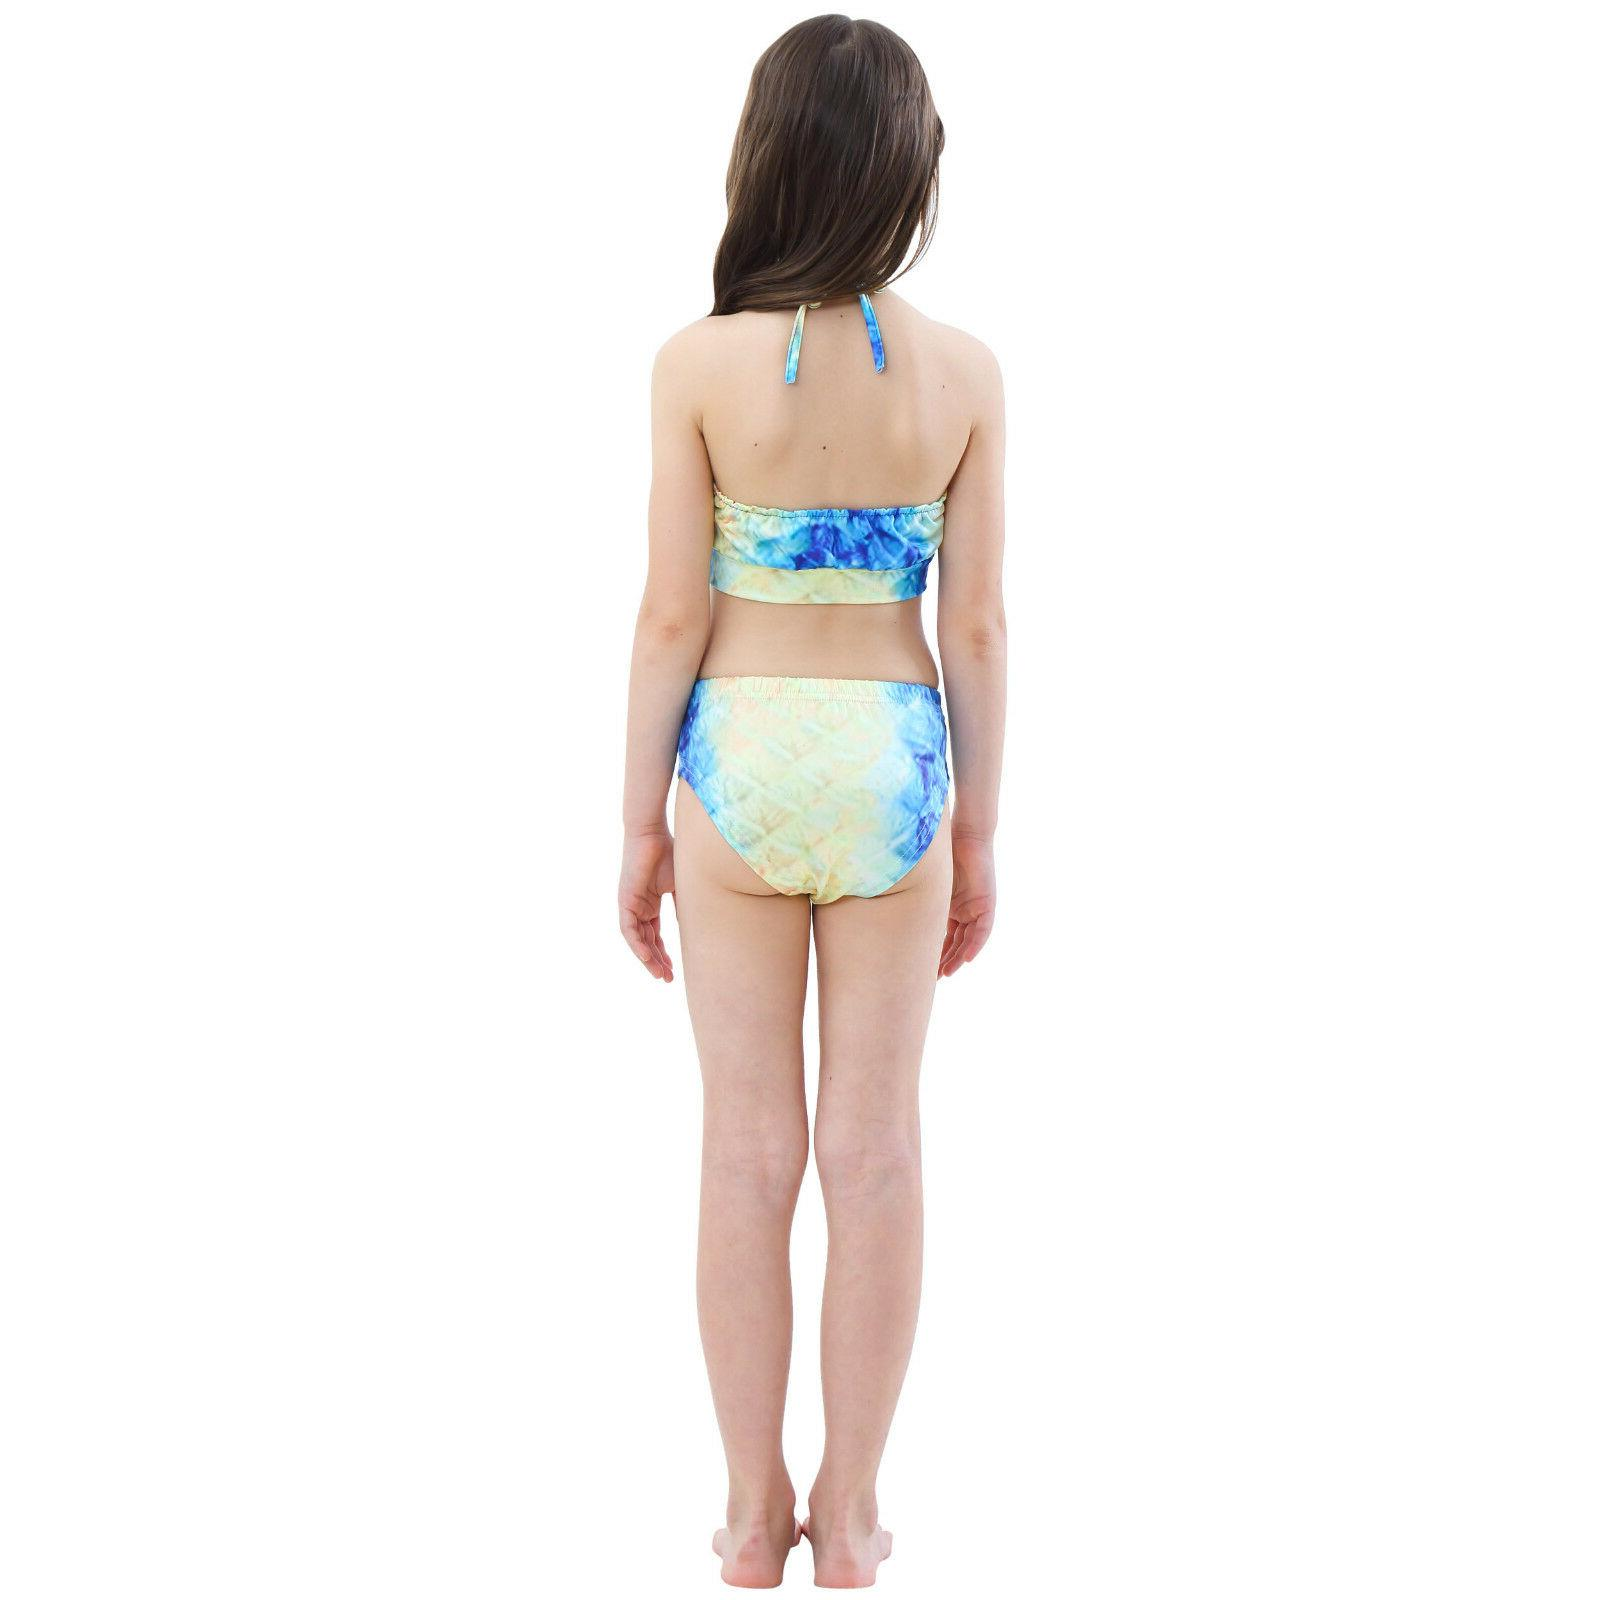 Kids Girl Mermaid Tail Bikini - Tail Swimming